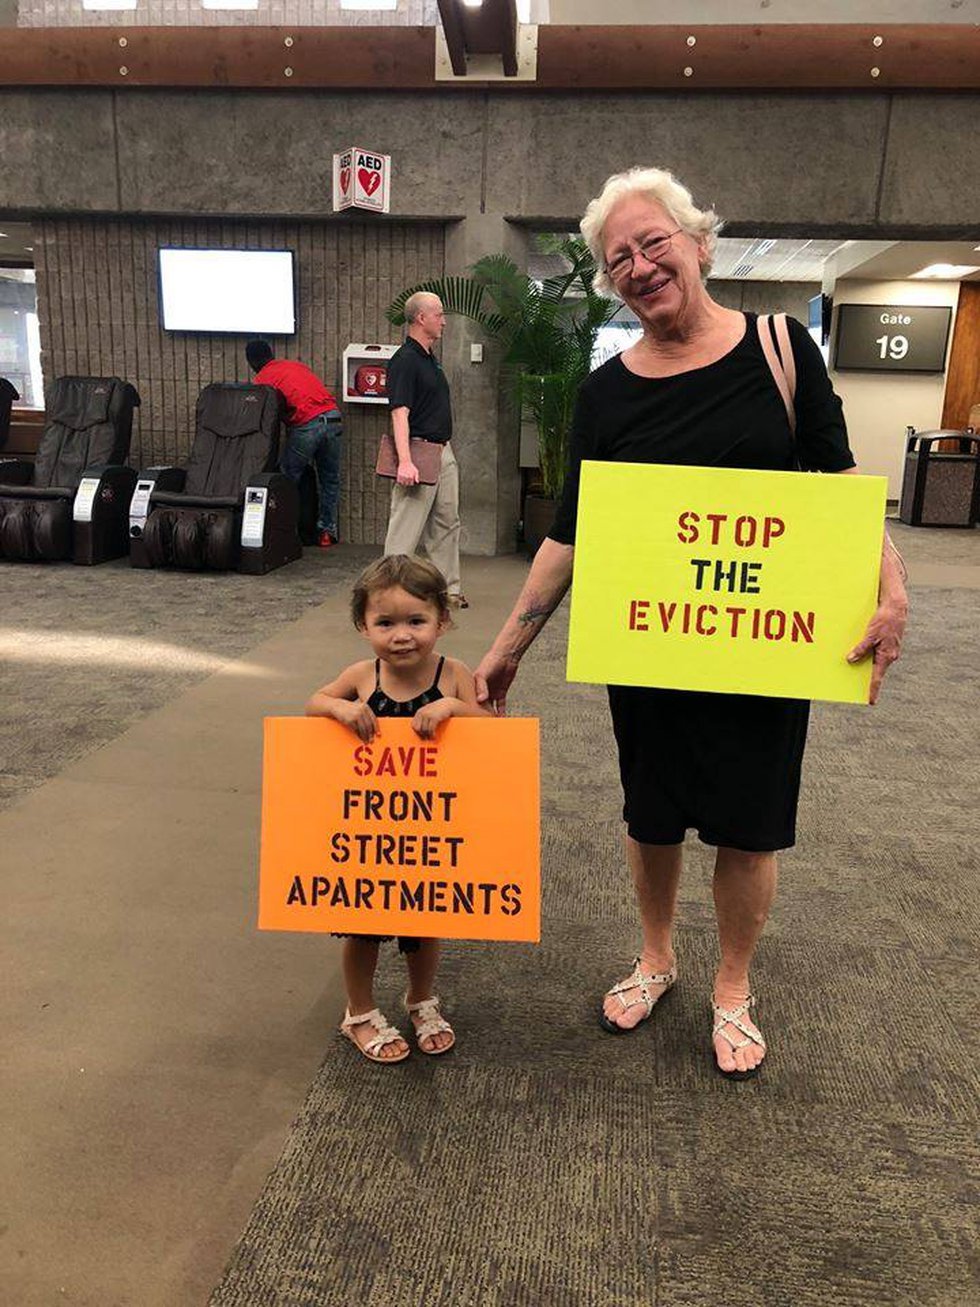 (Image: Save Front Street Apartments/Facebook)